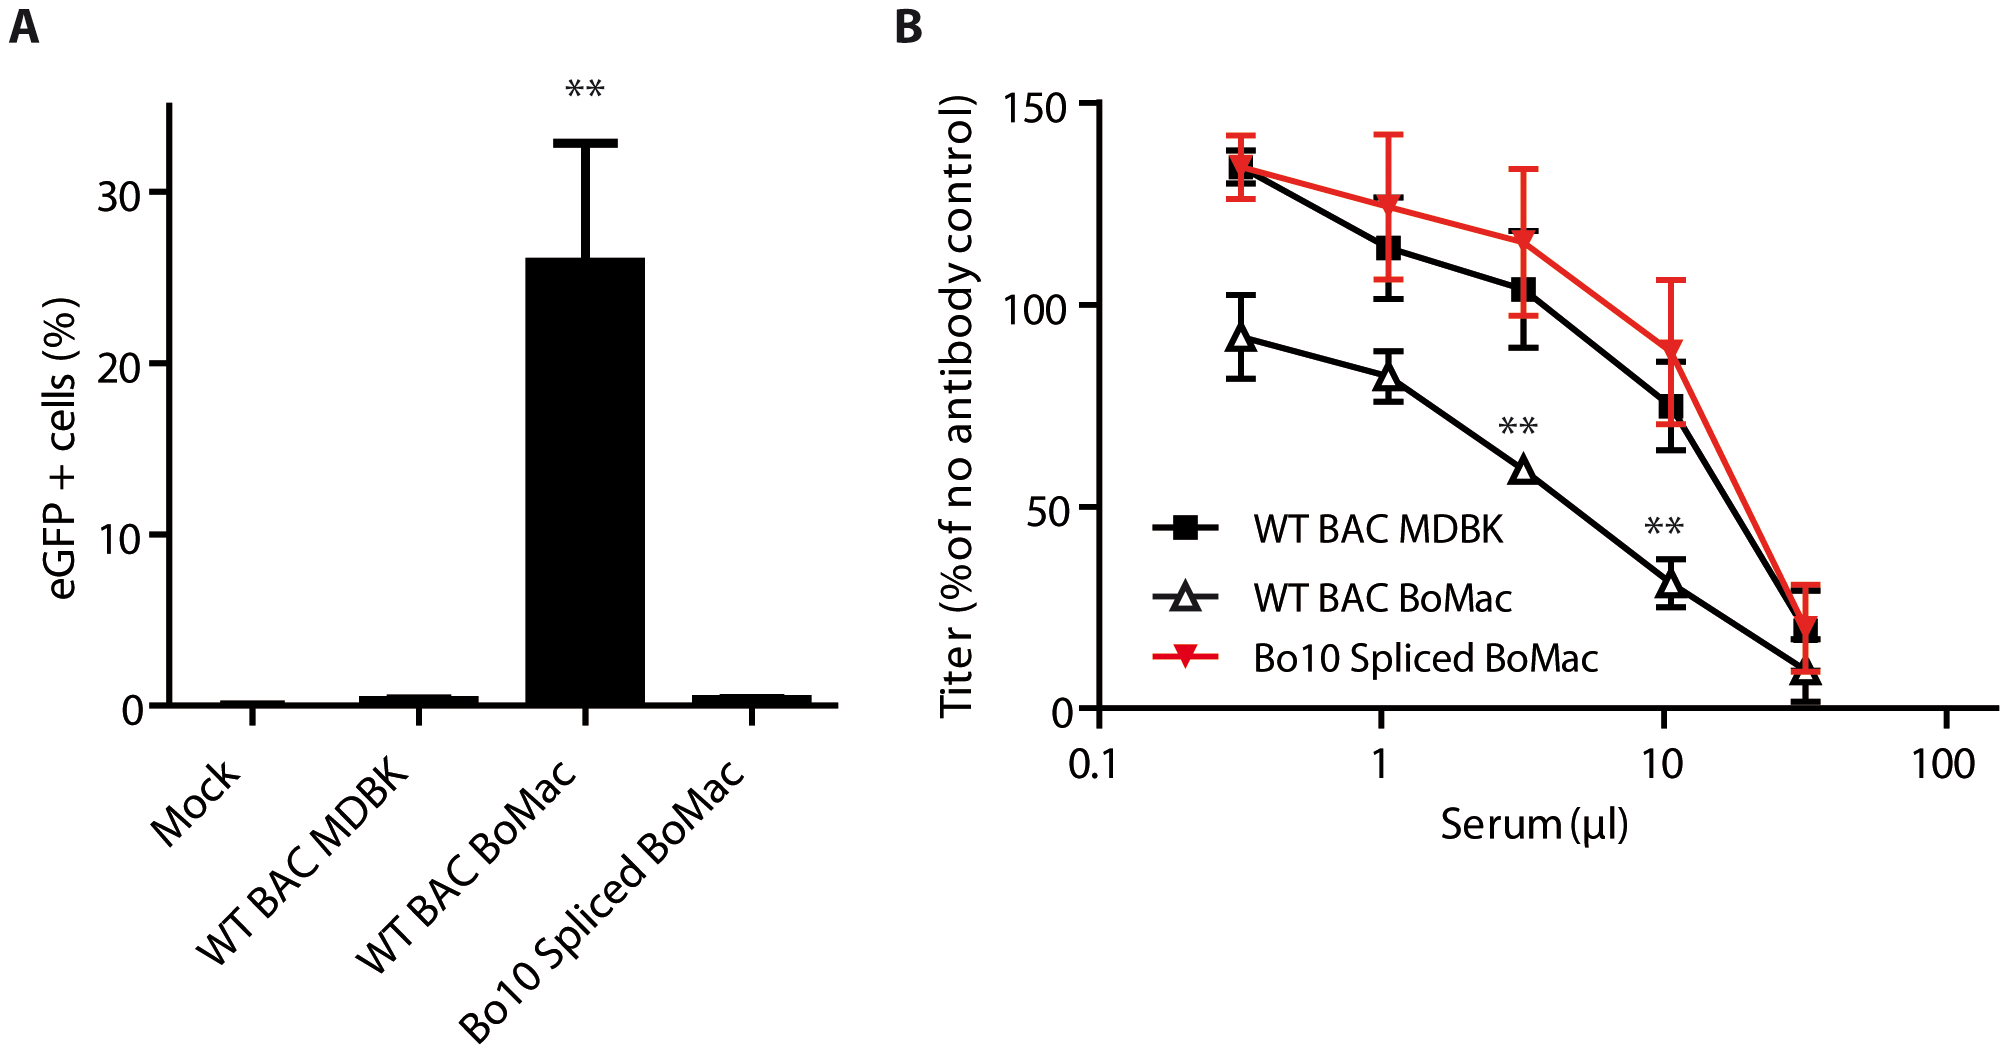 Expression of the spliced form of Bo10 mRNA reverts the phenotype of myeloid virions.